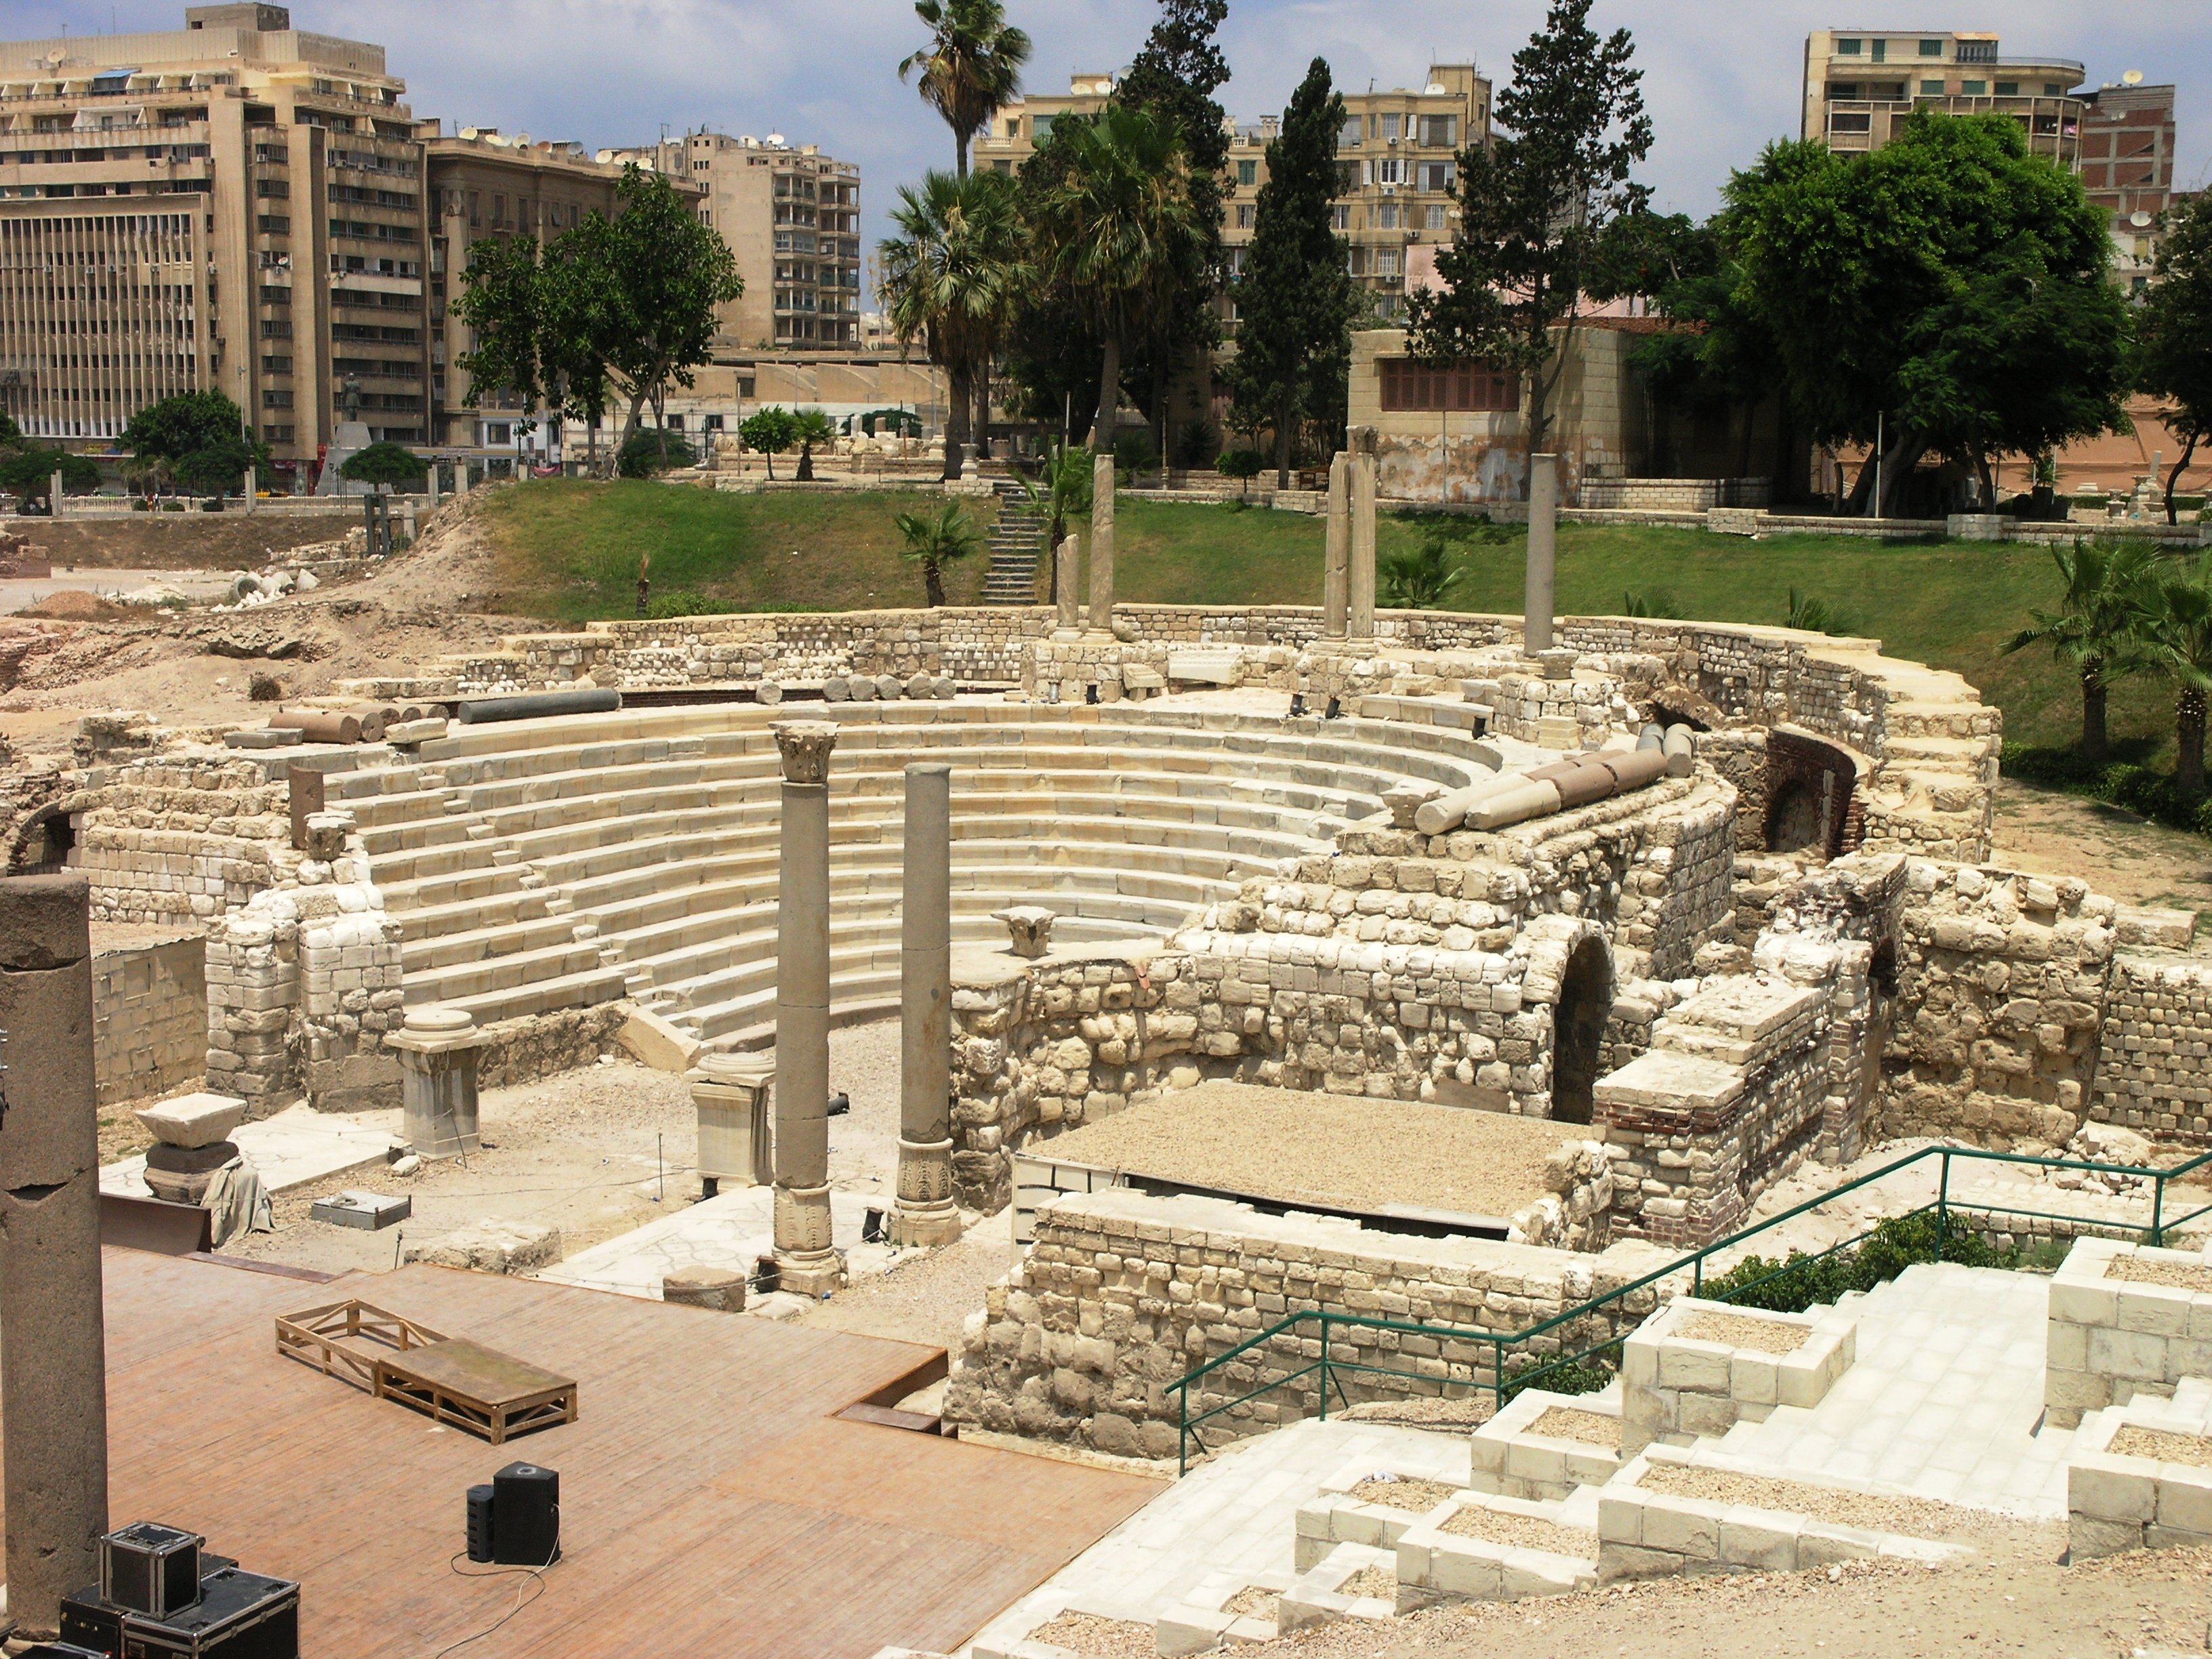 https://upload.wikimedia.org/wikipedia/commons/1/12/Alexandria_-_Roman_Amphitheater.JPG